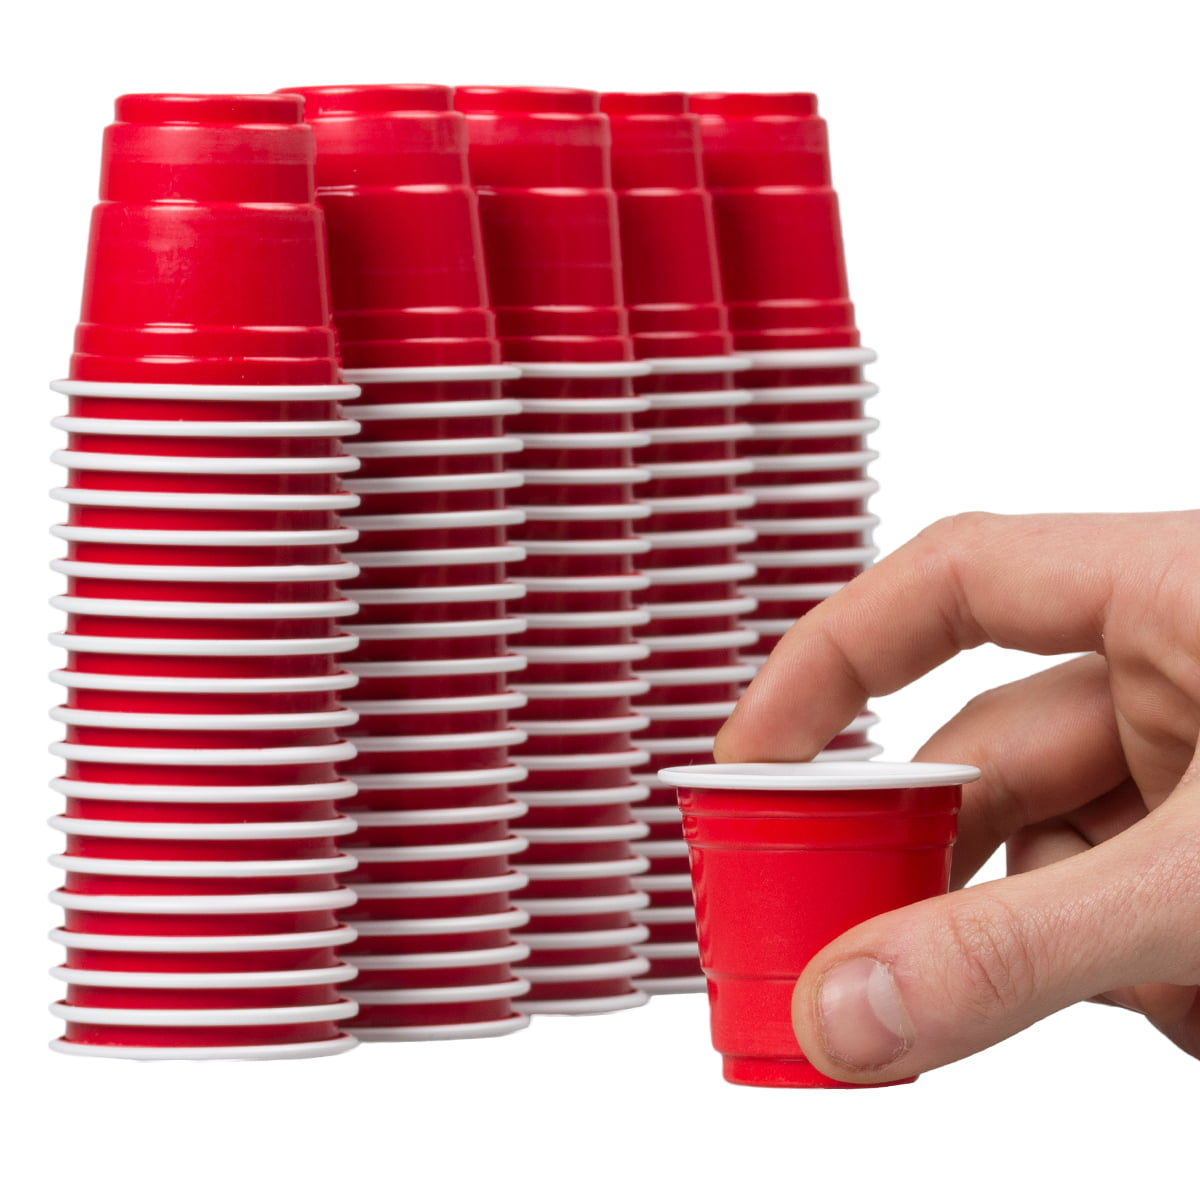 120ct Mini Red Cups 2oz Plastic Disposable Shot Glasses Party Shooter Beer Pong Jello by